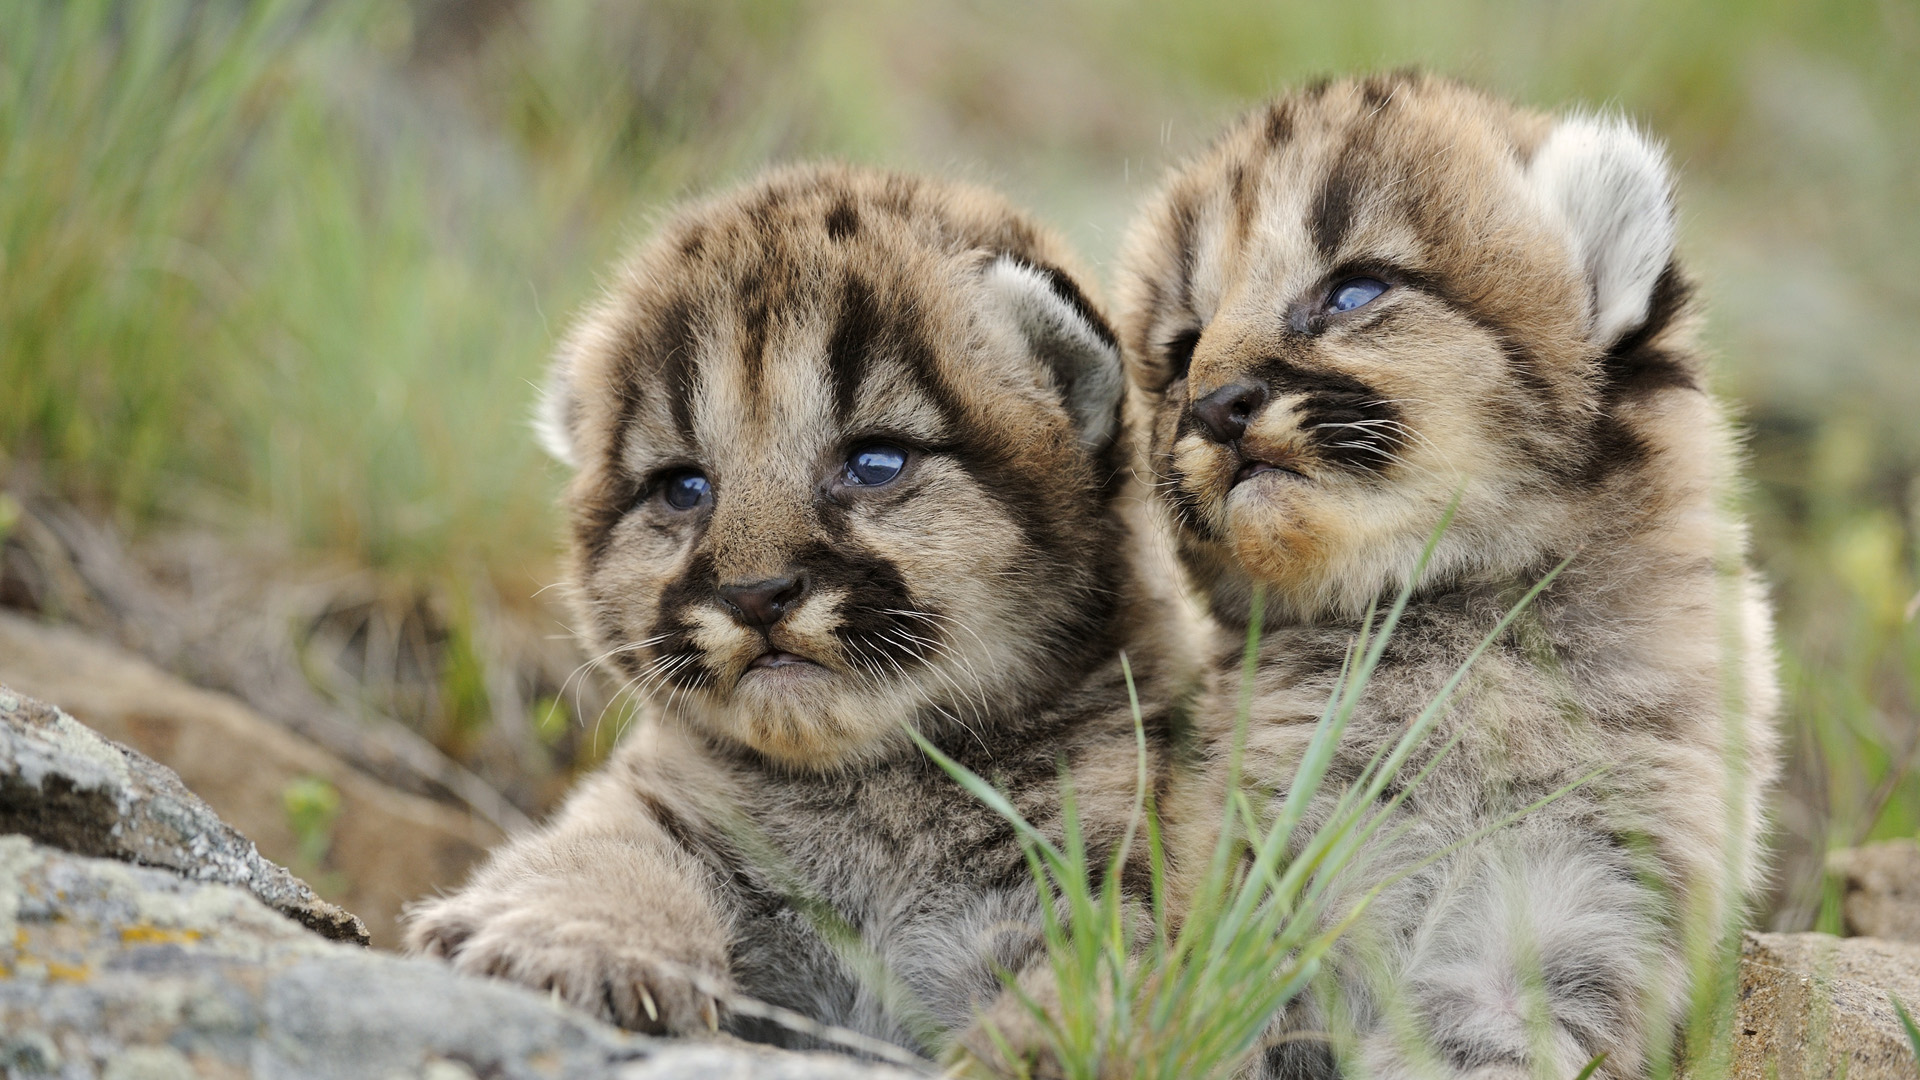 Download Baby Animals Hd 34411 1920x1080 Px High Definition Wallpaper